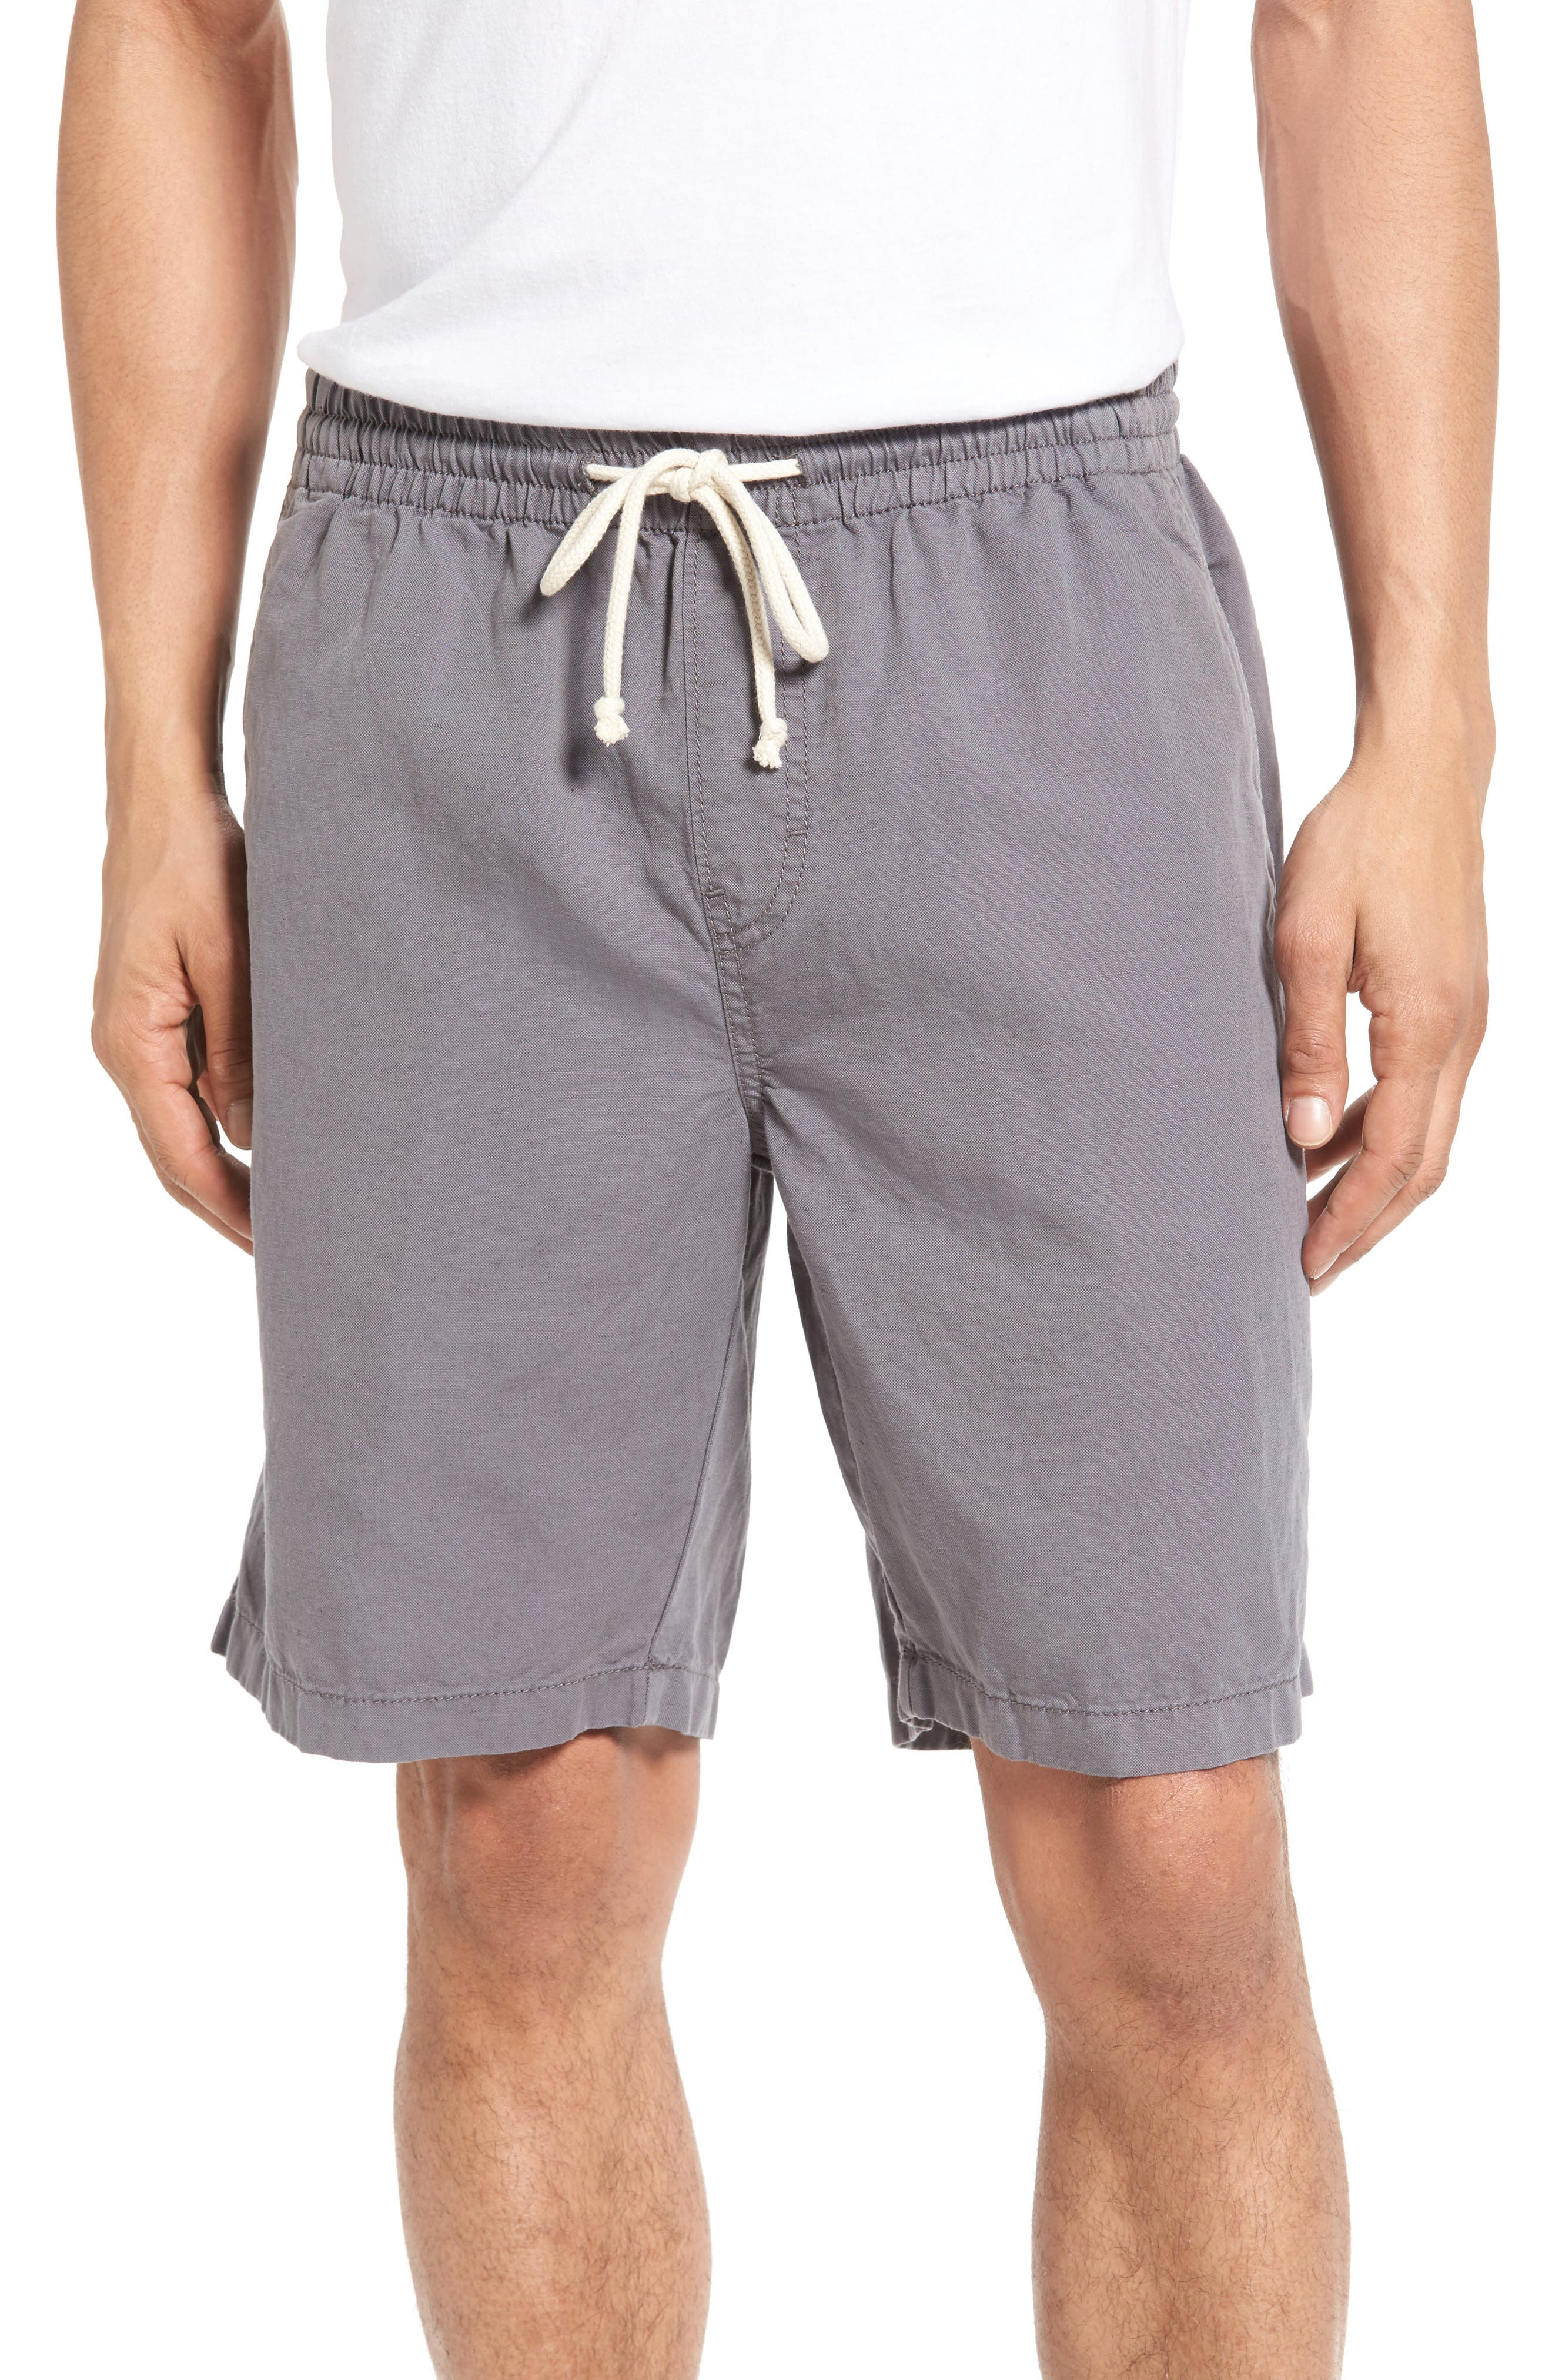 Nordstrom Men's Shop Cotton & Linen Blend Shorts